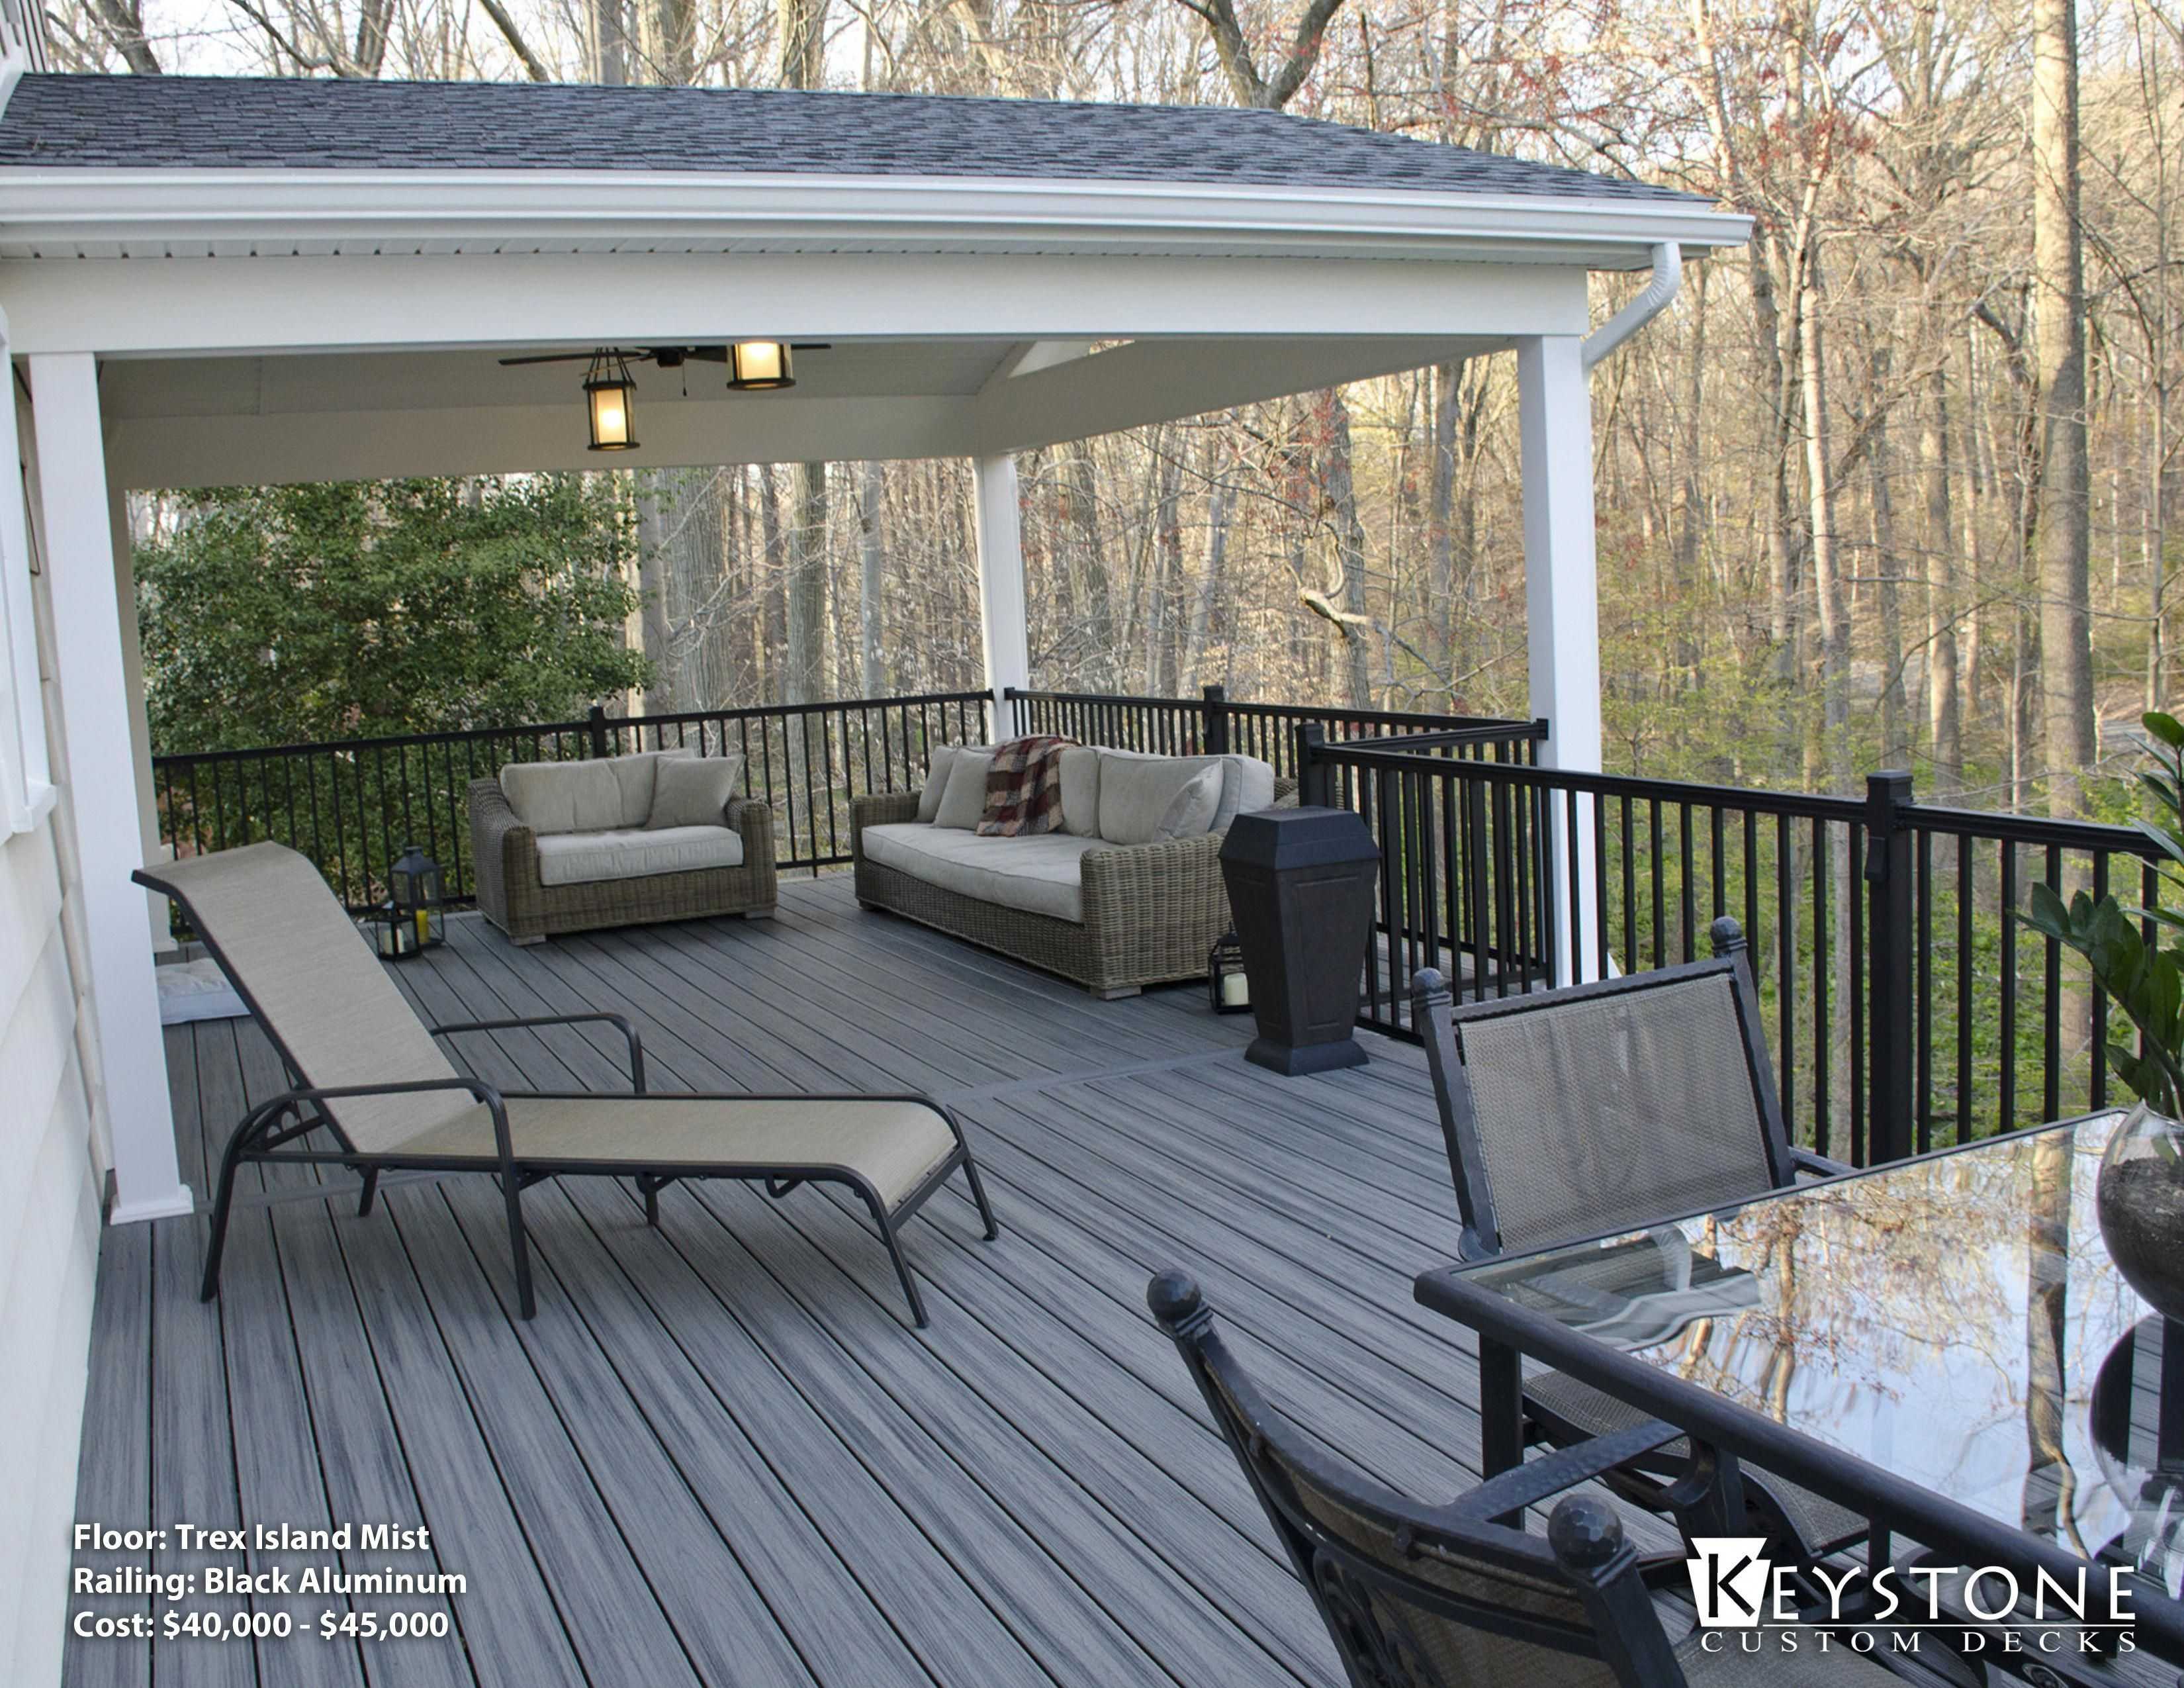 A teak table is an outright must have in every outdoor patio deck or swimming pool location. For just enough added class and convenience without taking anything away from your existing dining ensemble. #terassenüberdachung